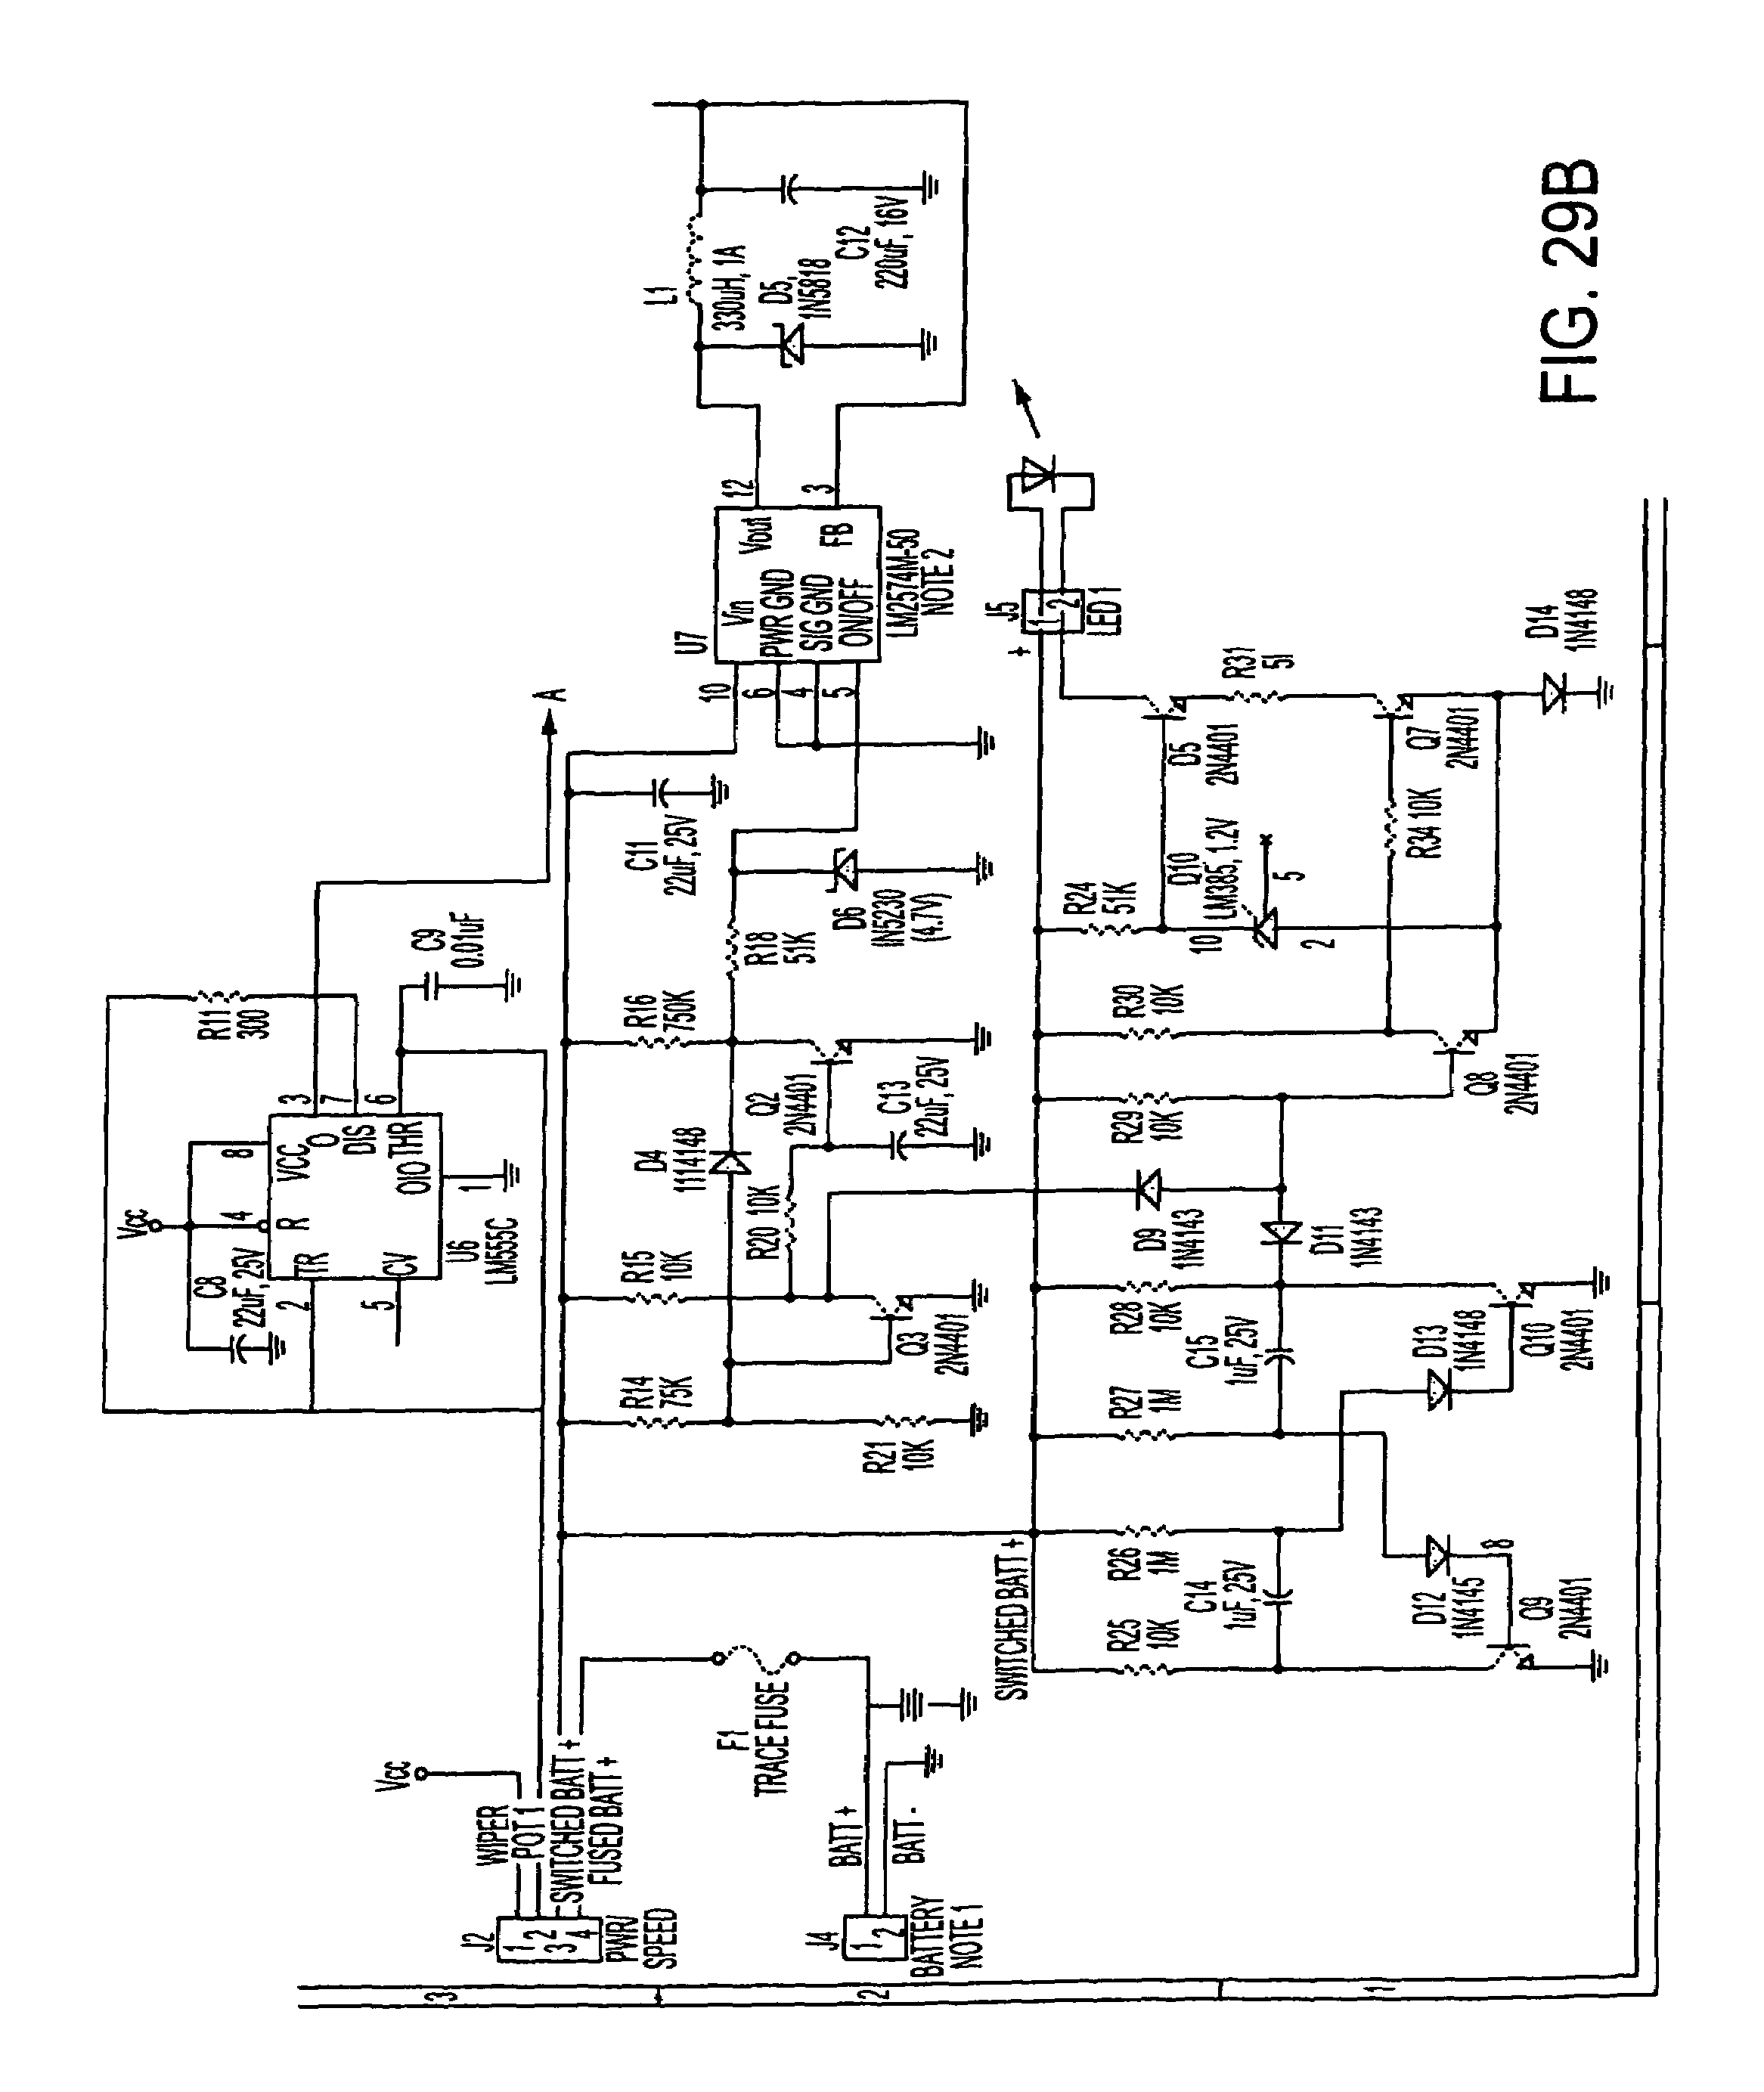 Wabco Wiring Schematic - Wiring Diagram Review on